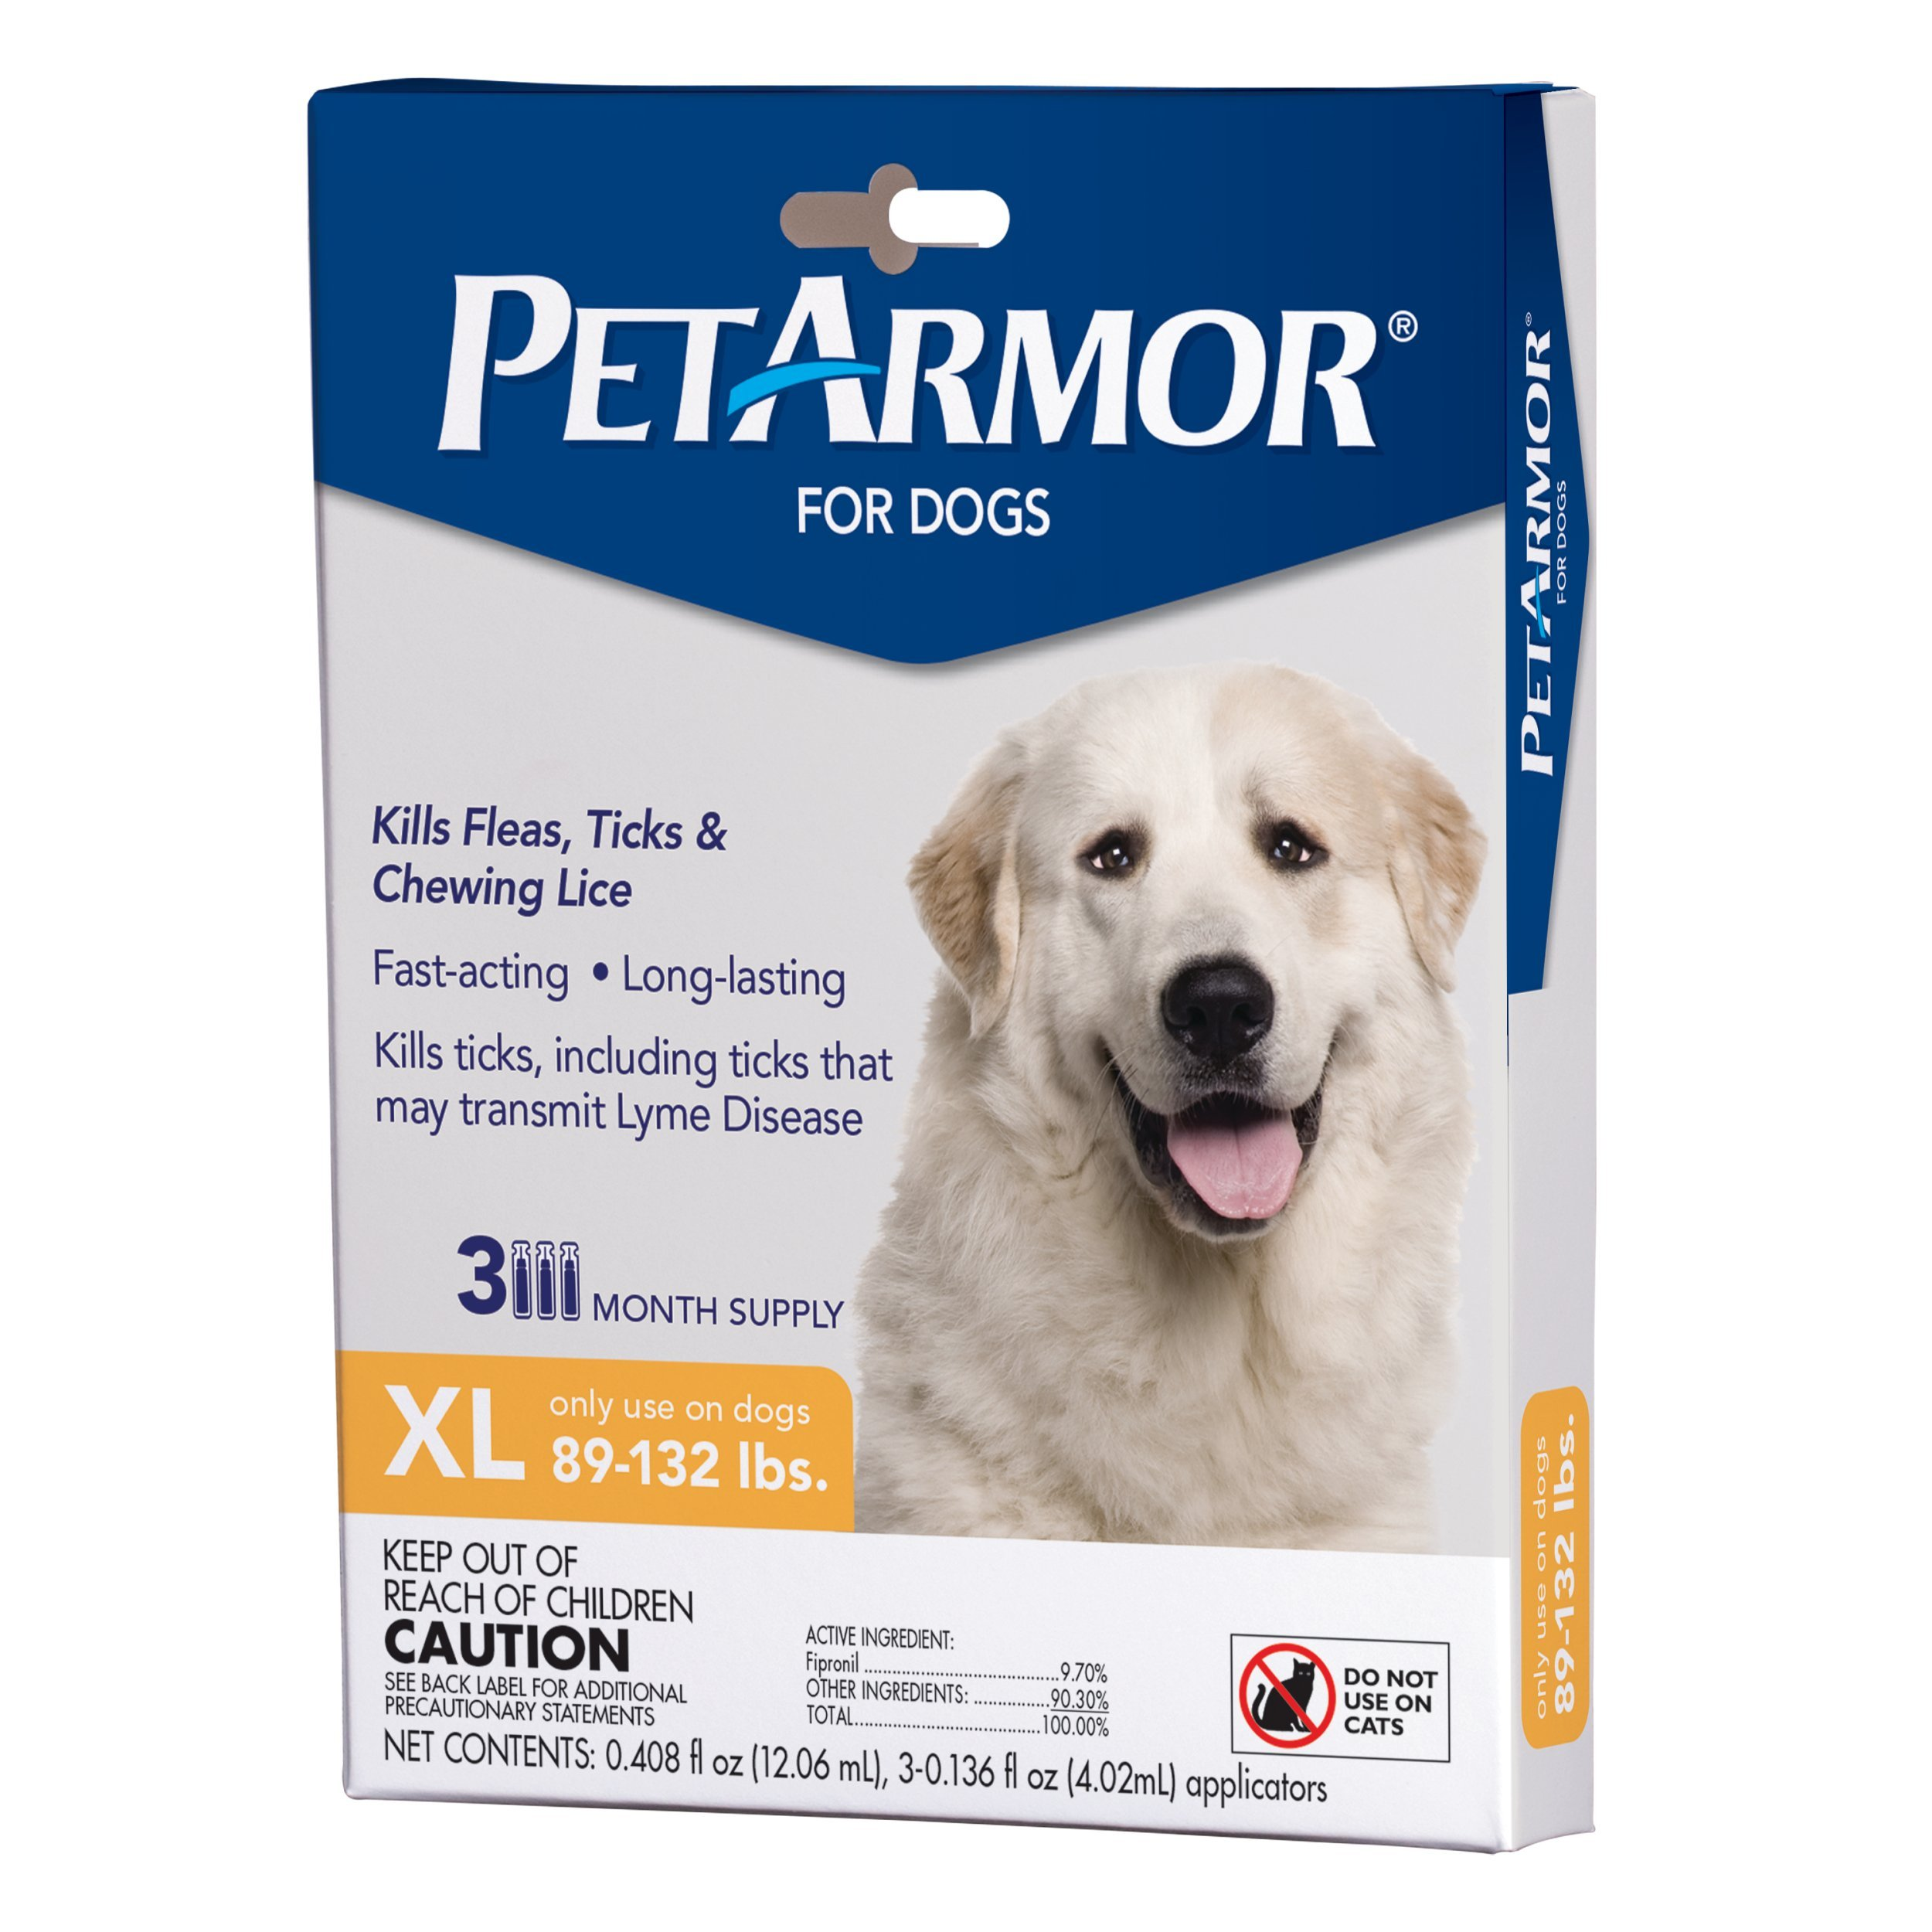 PETARMOR Squeeze on Dog Flea and Tick Repellent, 3 Month Pack for 89 to 132-Pound